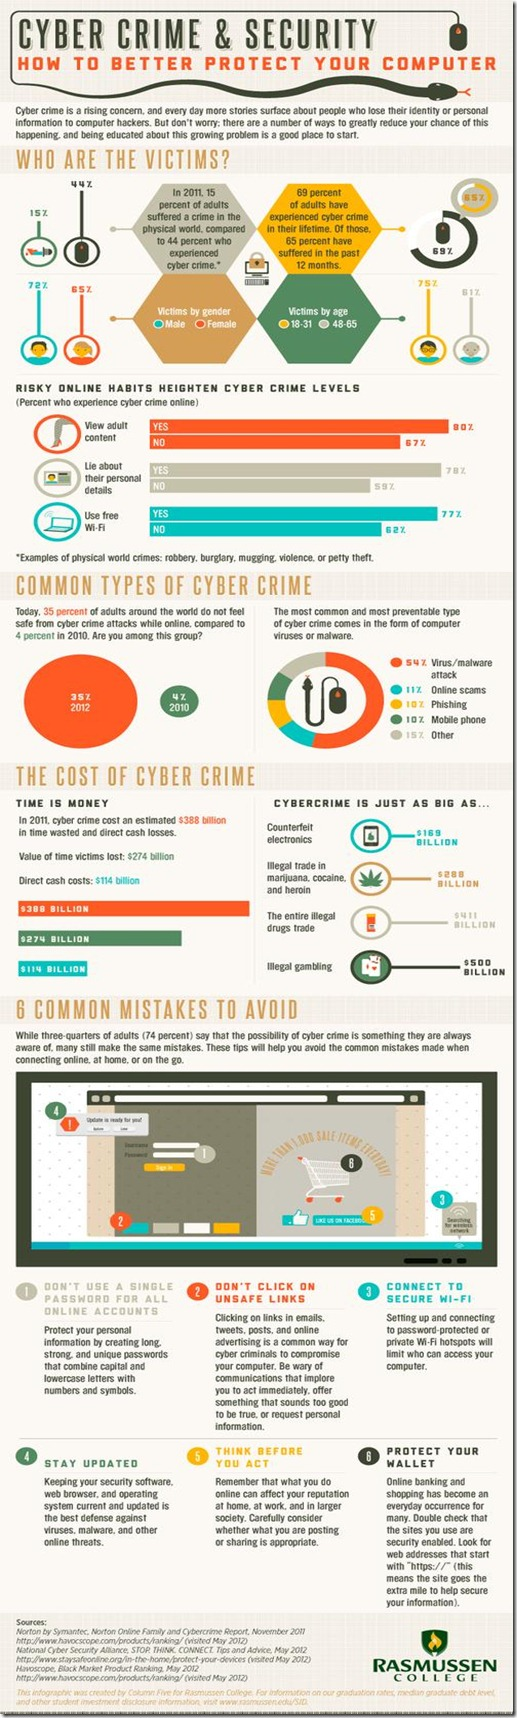 cybercrime infographic